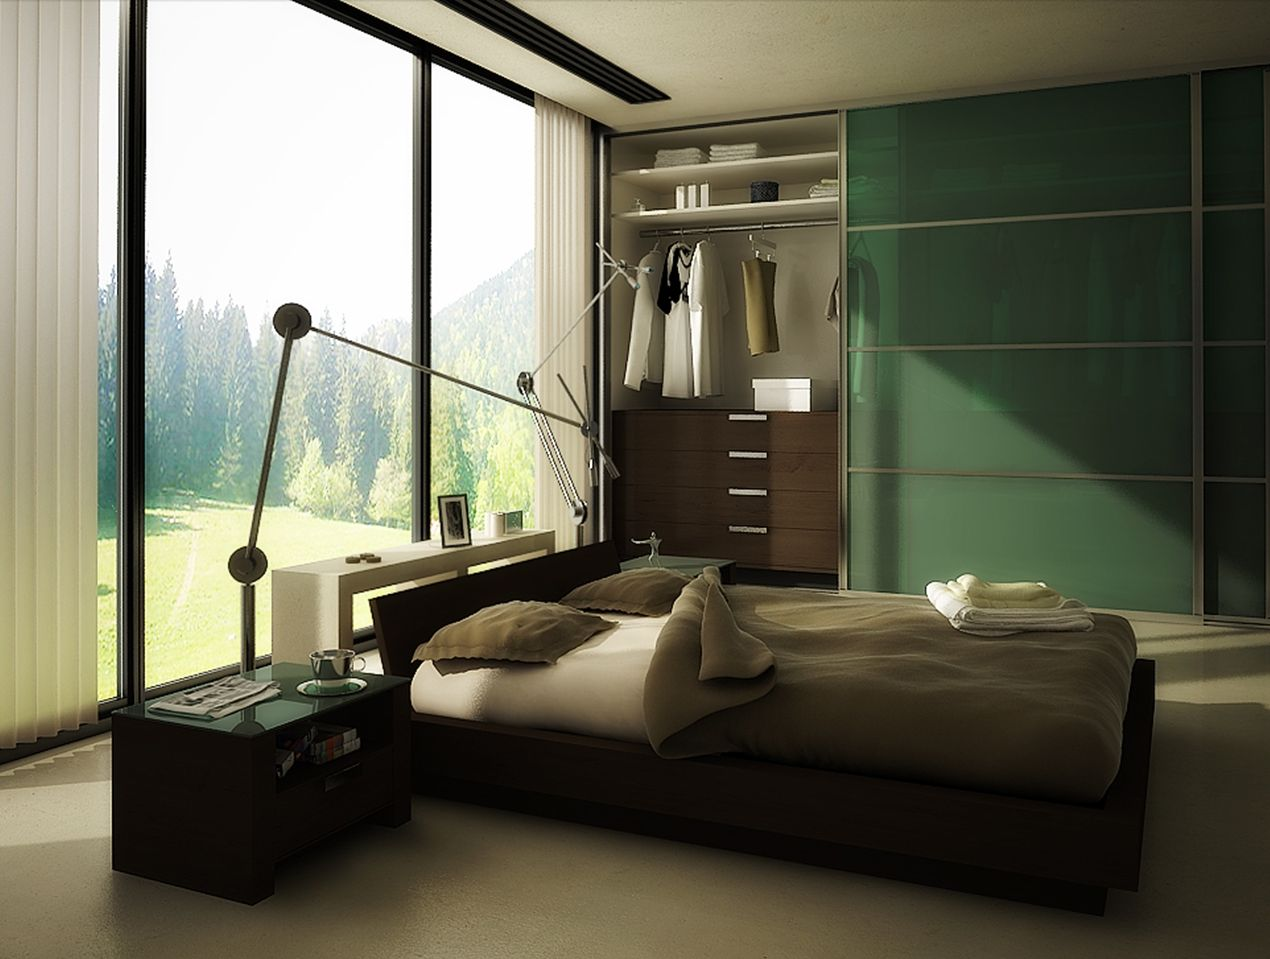 Bedroom Colour Combination Images 20 fantastic bedroom color schemes